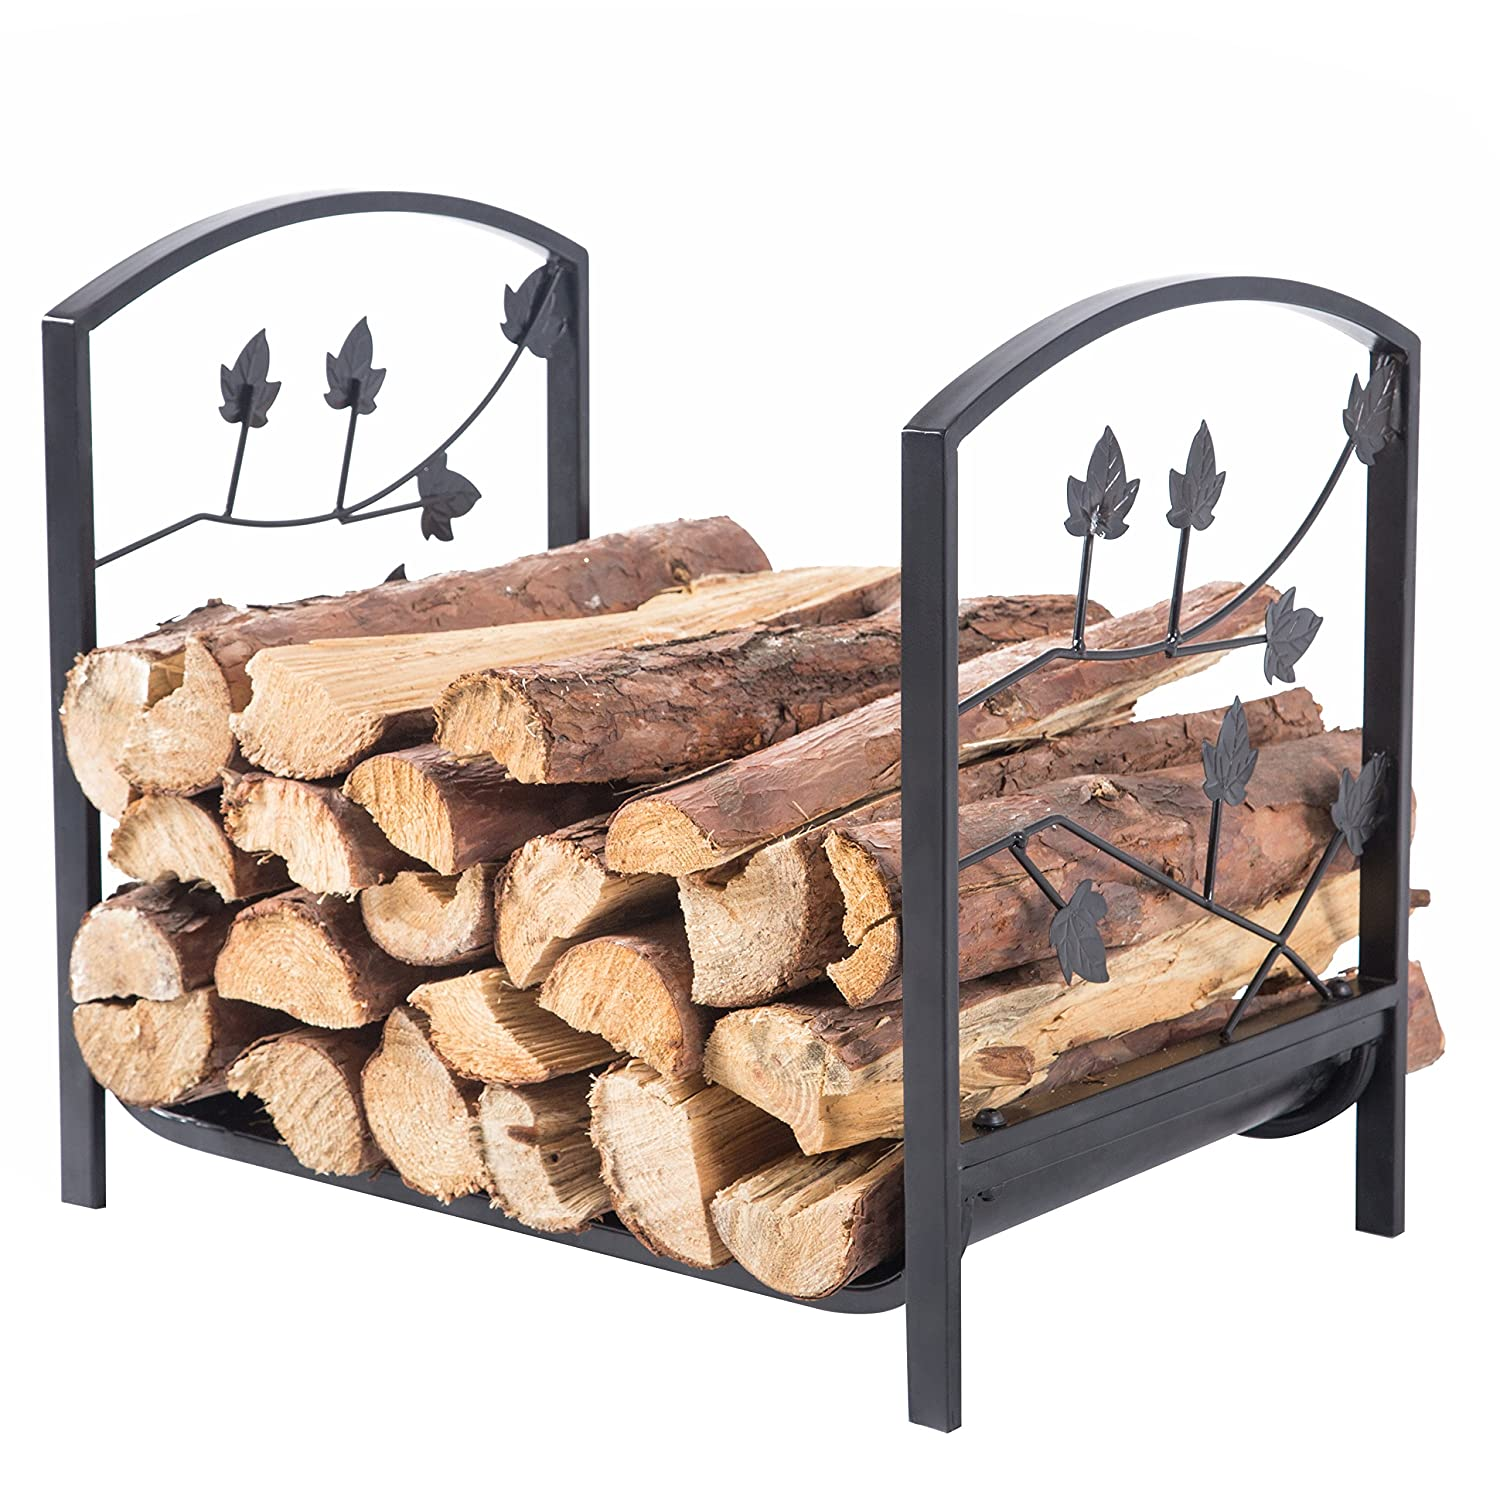 Rustic Black Metal Rectangular Firewood Log Holder Rack with Cutout Tree Branch Leaf Design MyGift